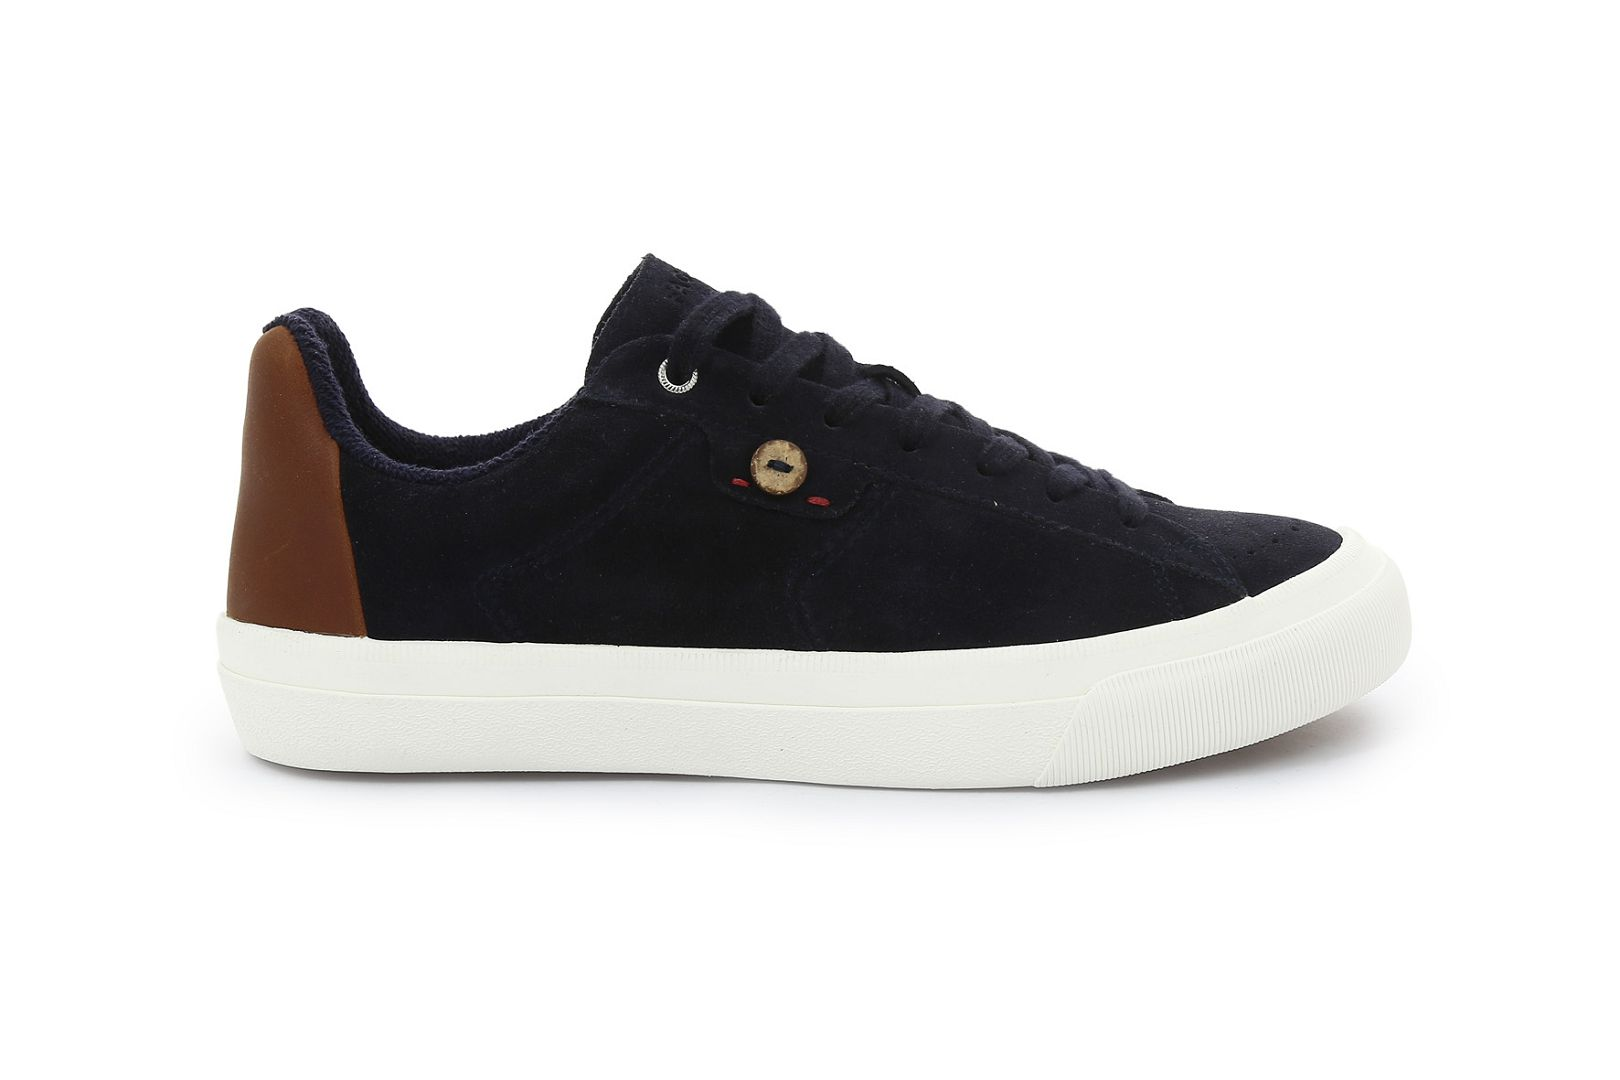 Sloe suede leather